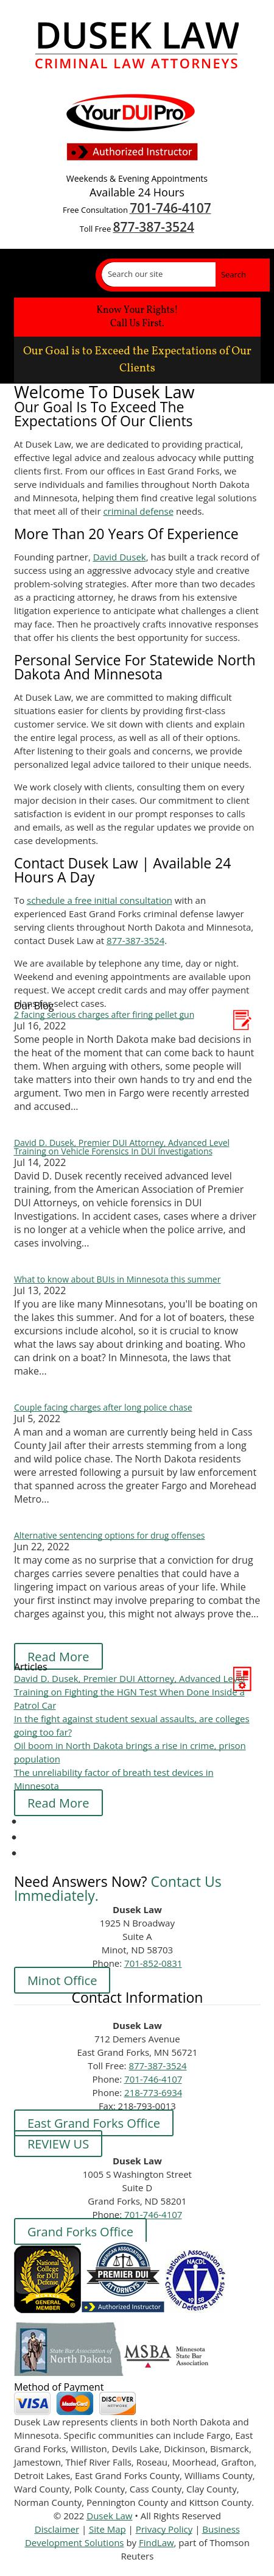 Dusek Law - Grand Forks ND Lawyers